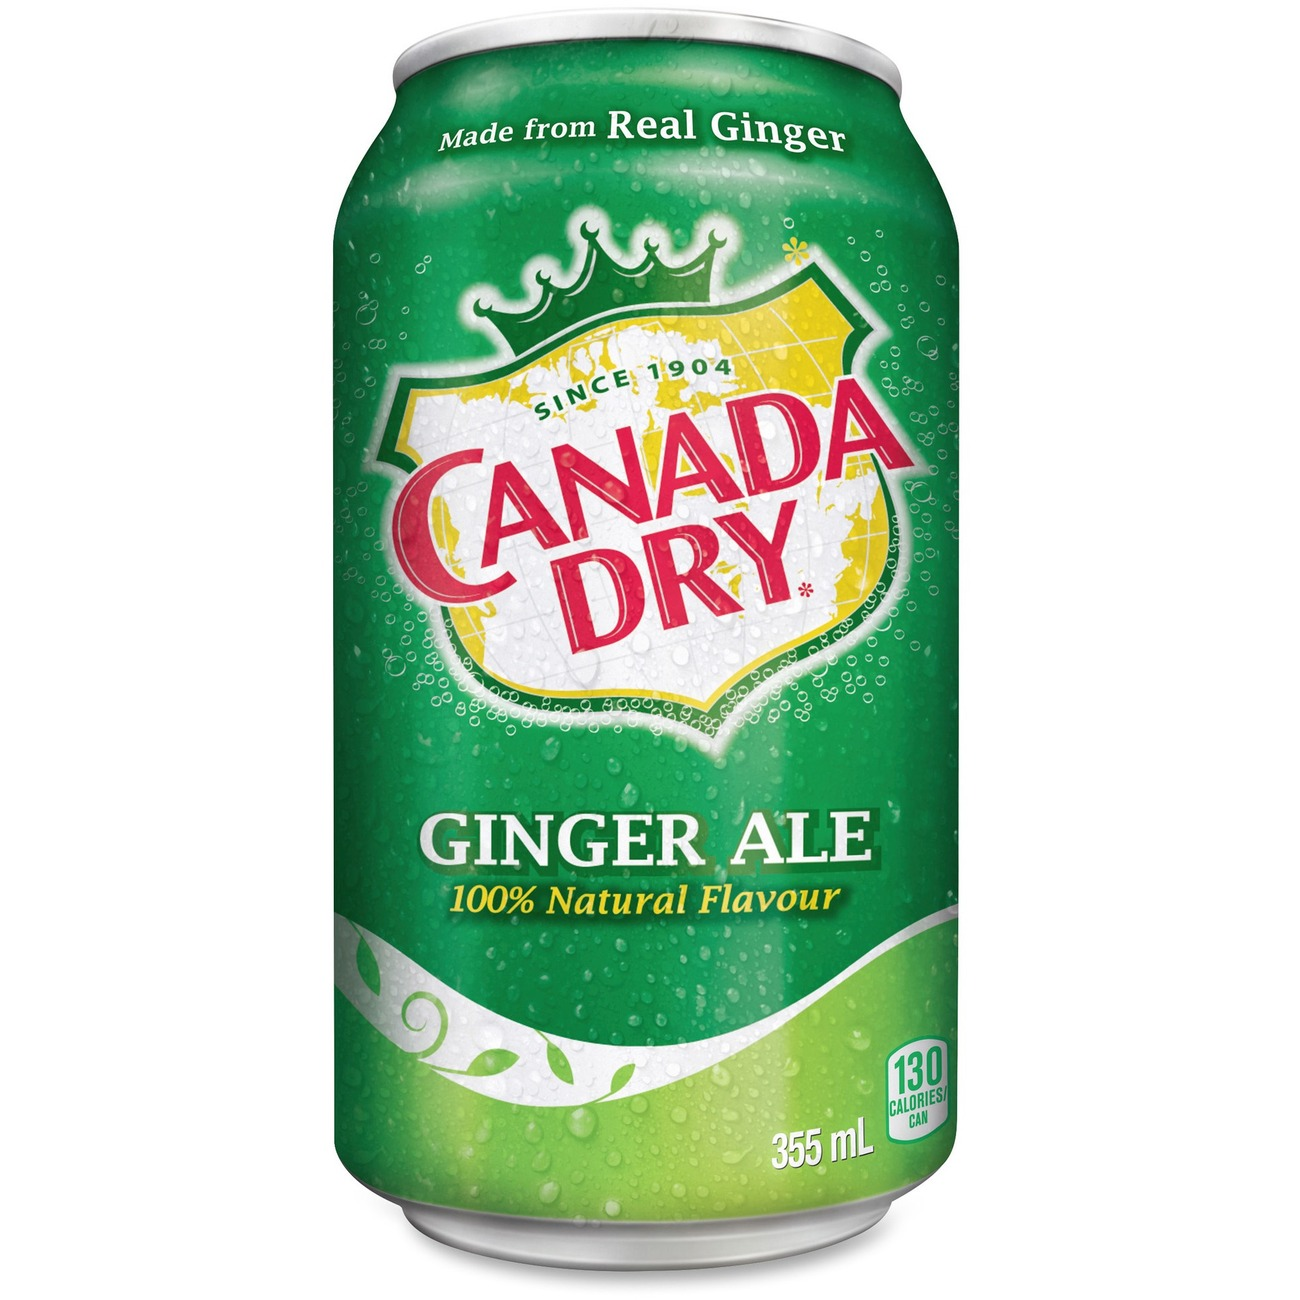 Canada Dry Ginger Ale for Pinterest